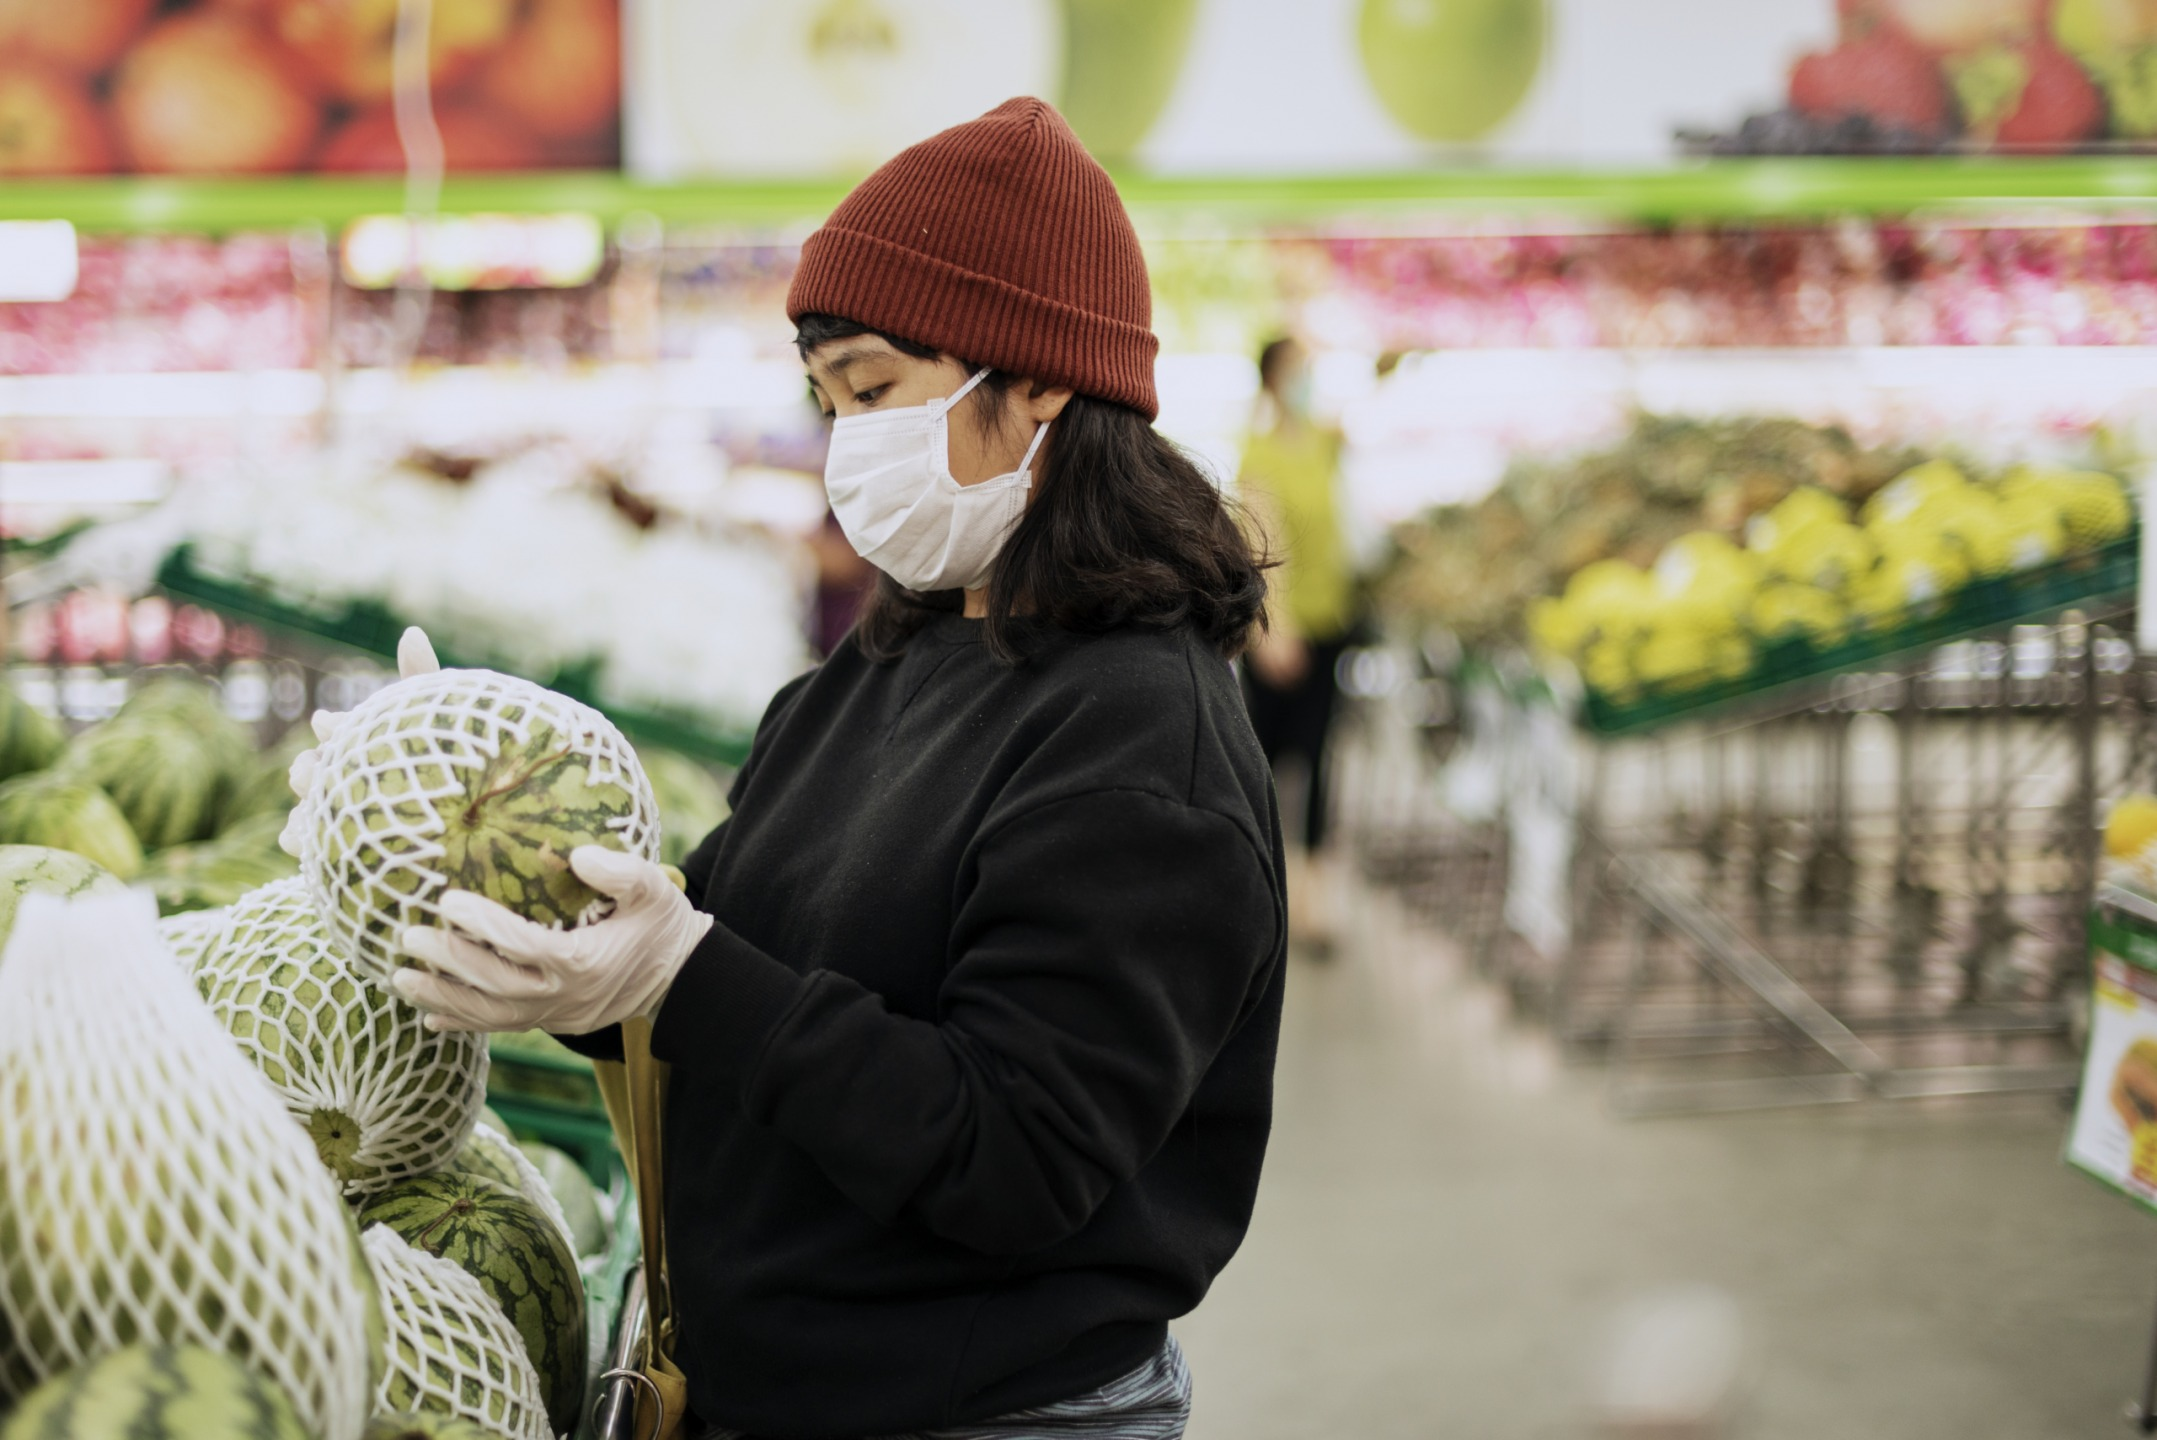 Image of women at a market with a mask on during pandemic